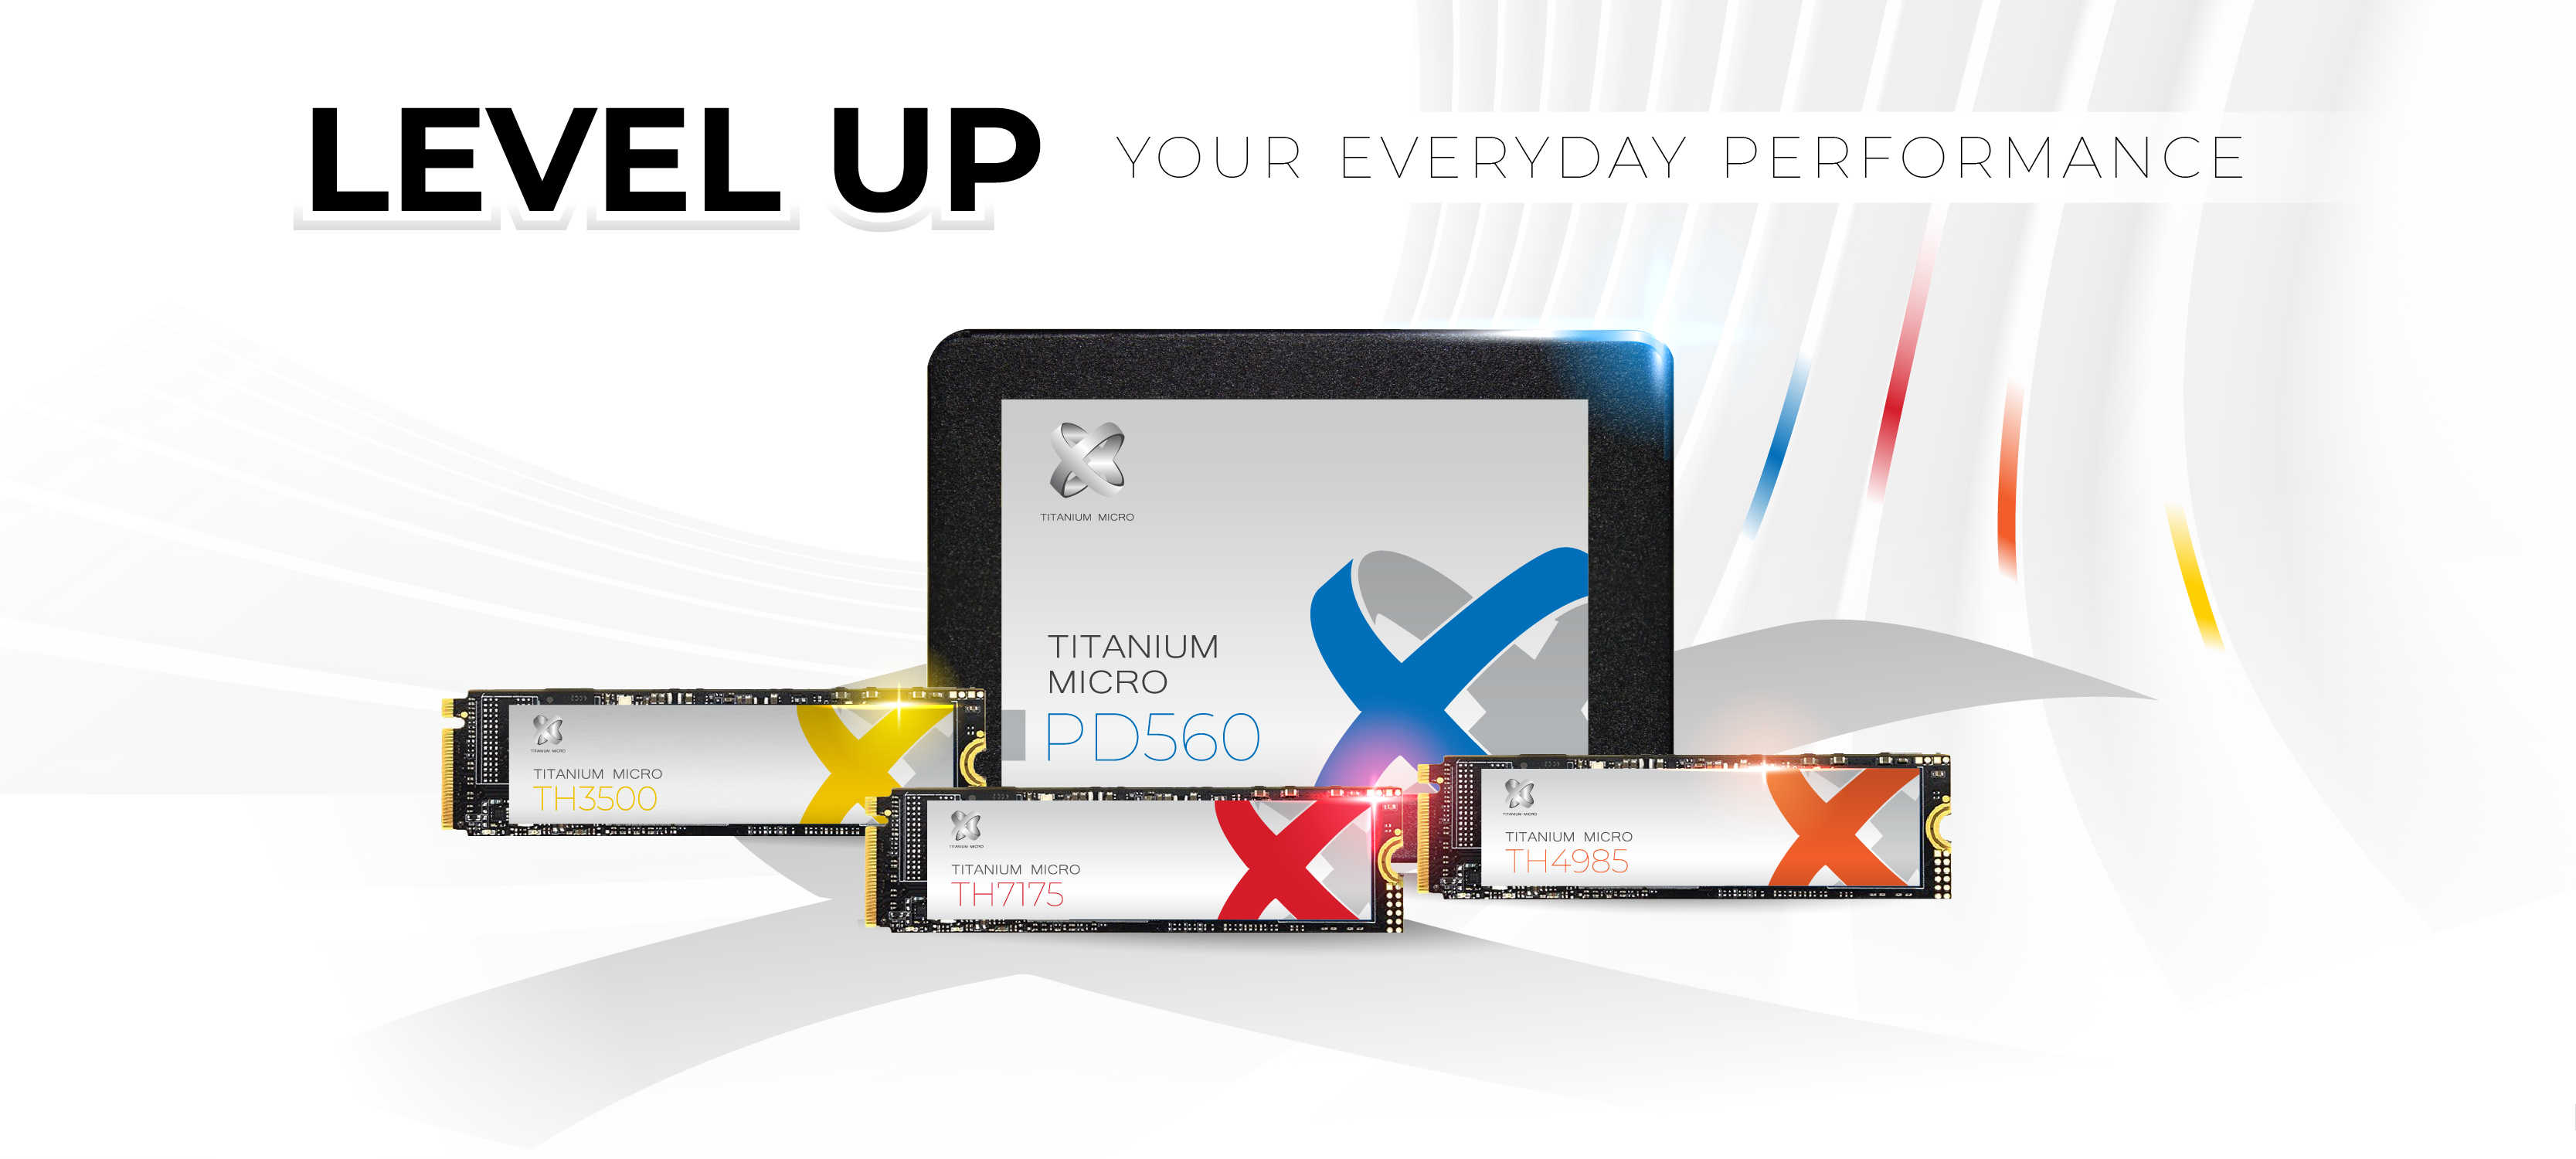 Titanium micro Internal SSD High speed Storage LEVEL UP YOUR EVERYDAY PERFORMANCE